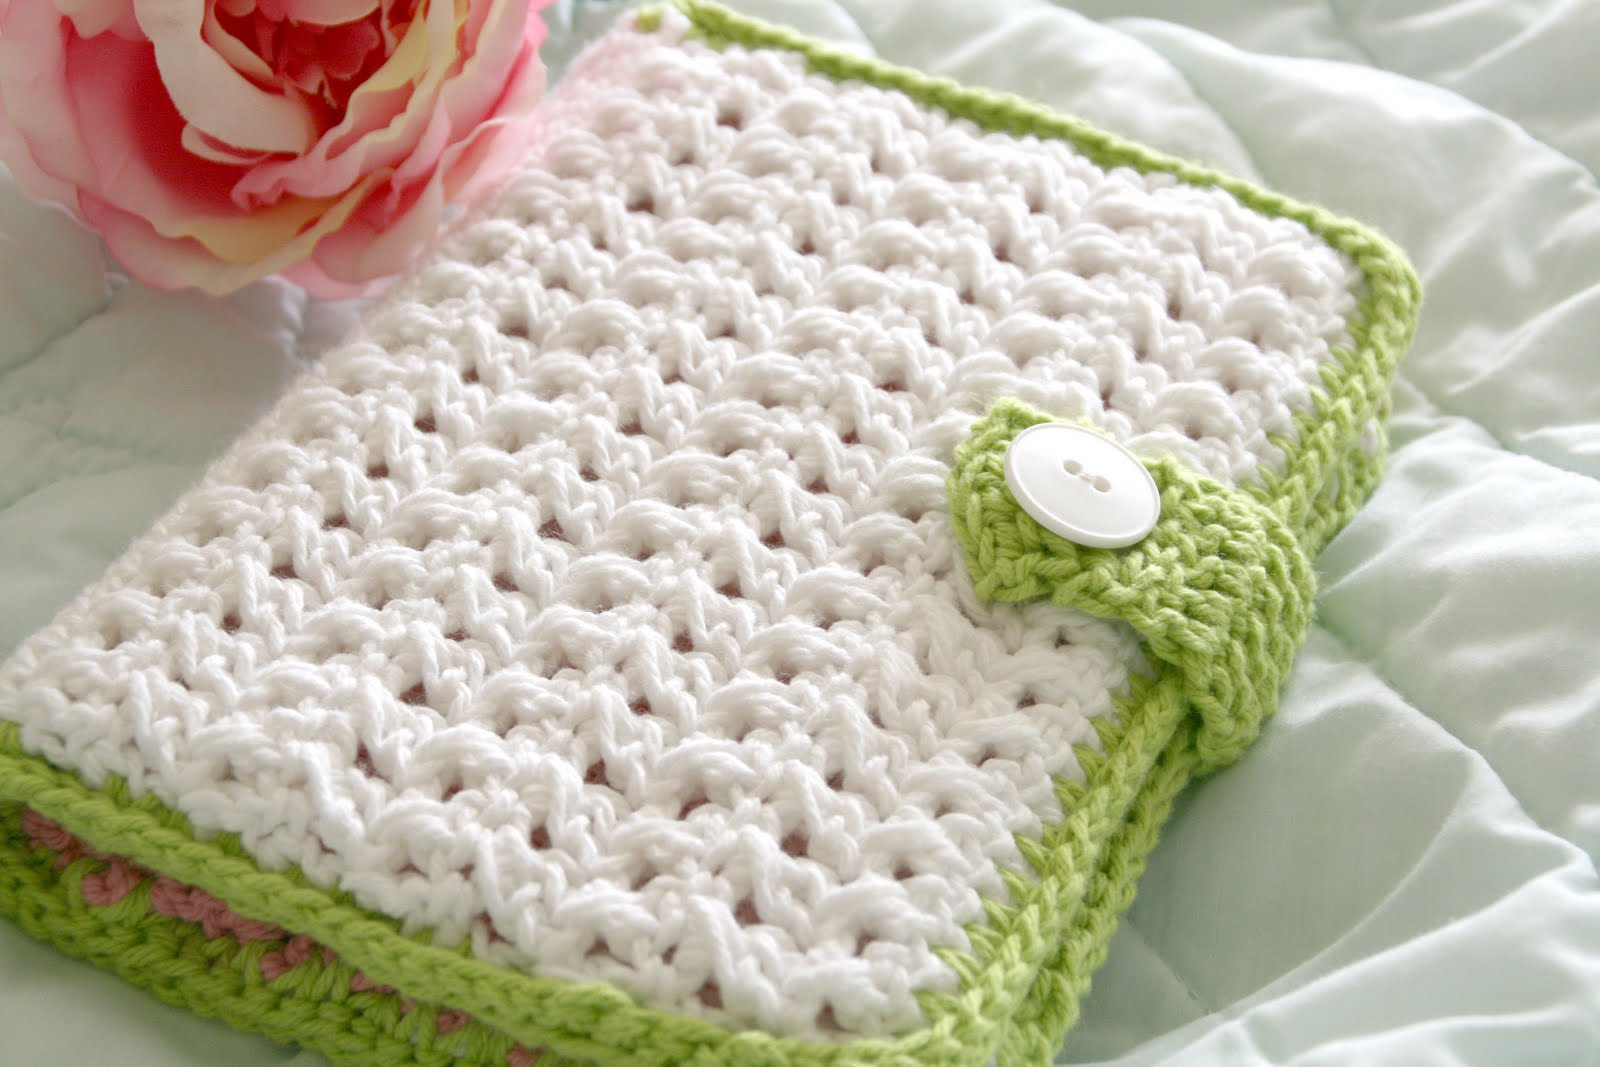 Book Cover Crochet Hook : Crochet gifts book covers on pinterest